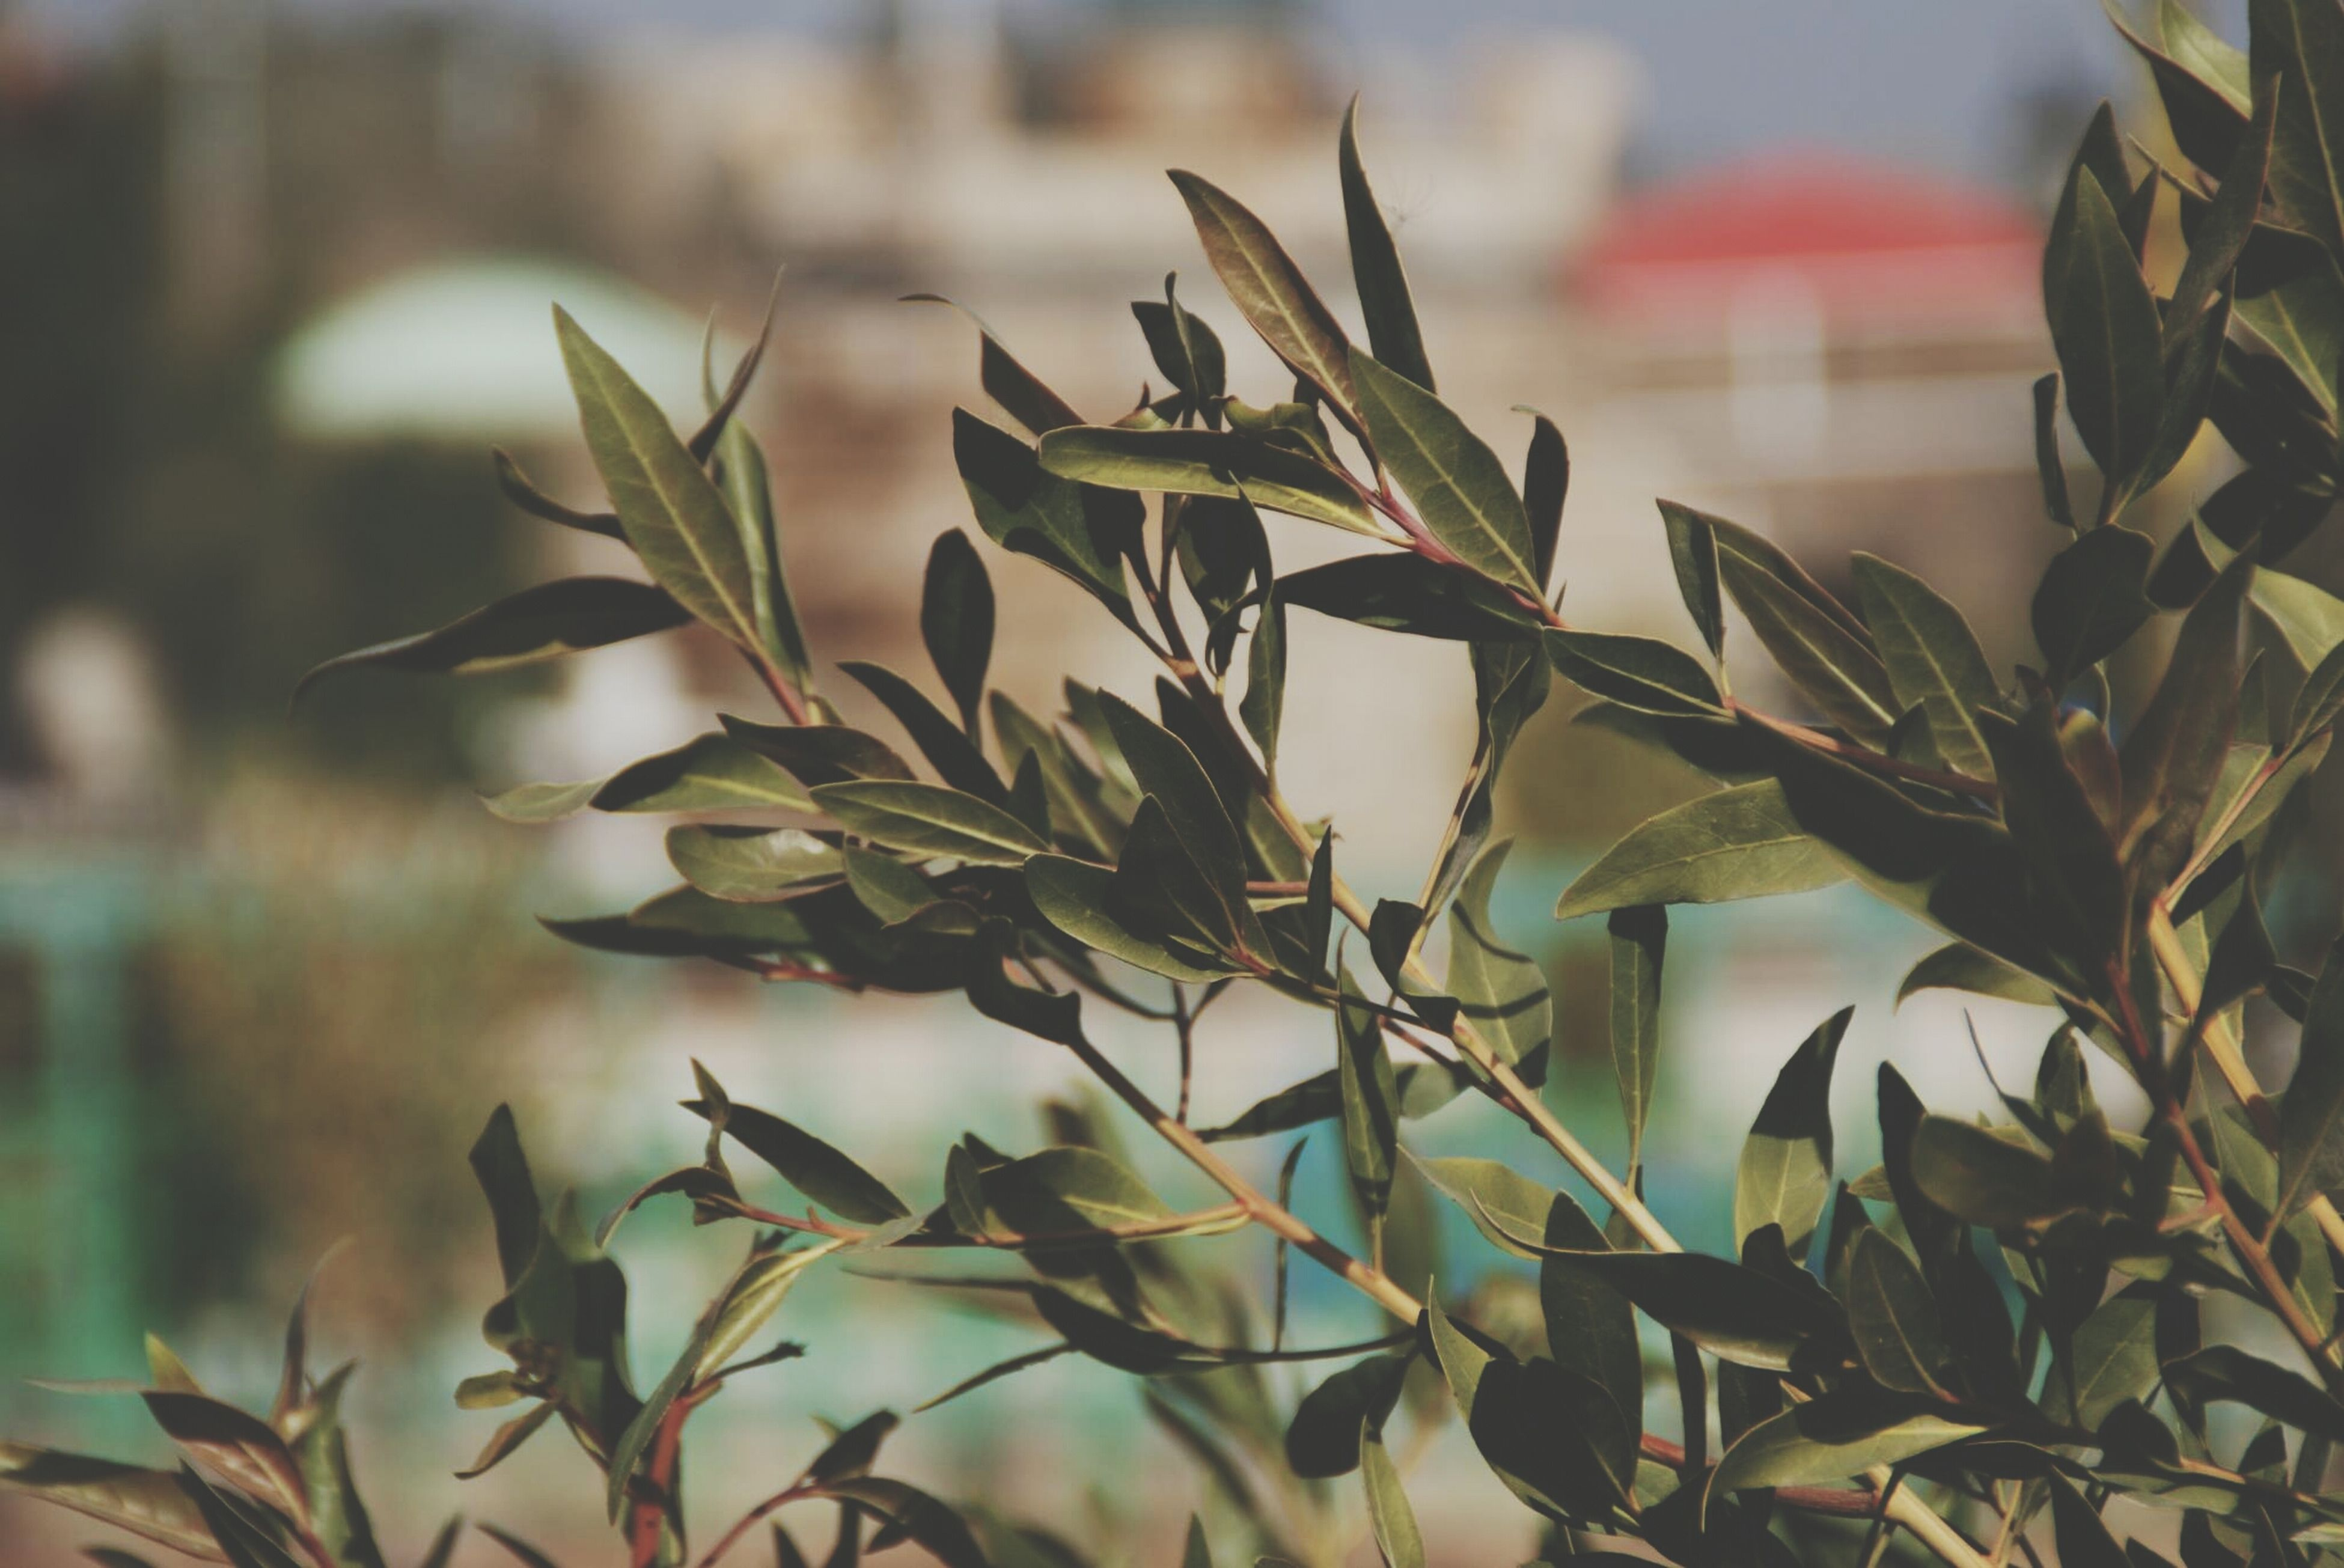 leaf, growth, plant, close-up, focus on foreground, nature, green color, stem, growing, beauty in nature, leaves, selective focus, no people, outdoors, sunlight, twig, day, tranquility, freshness, green